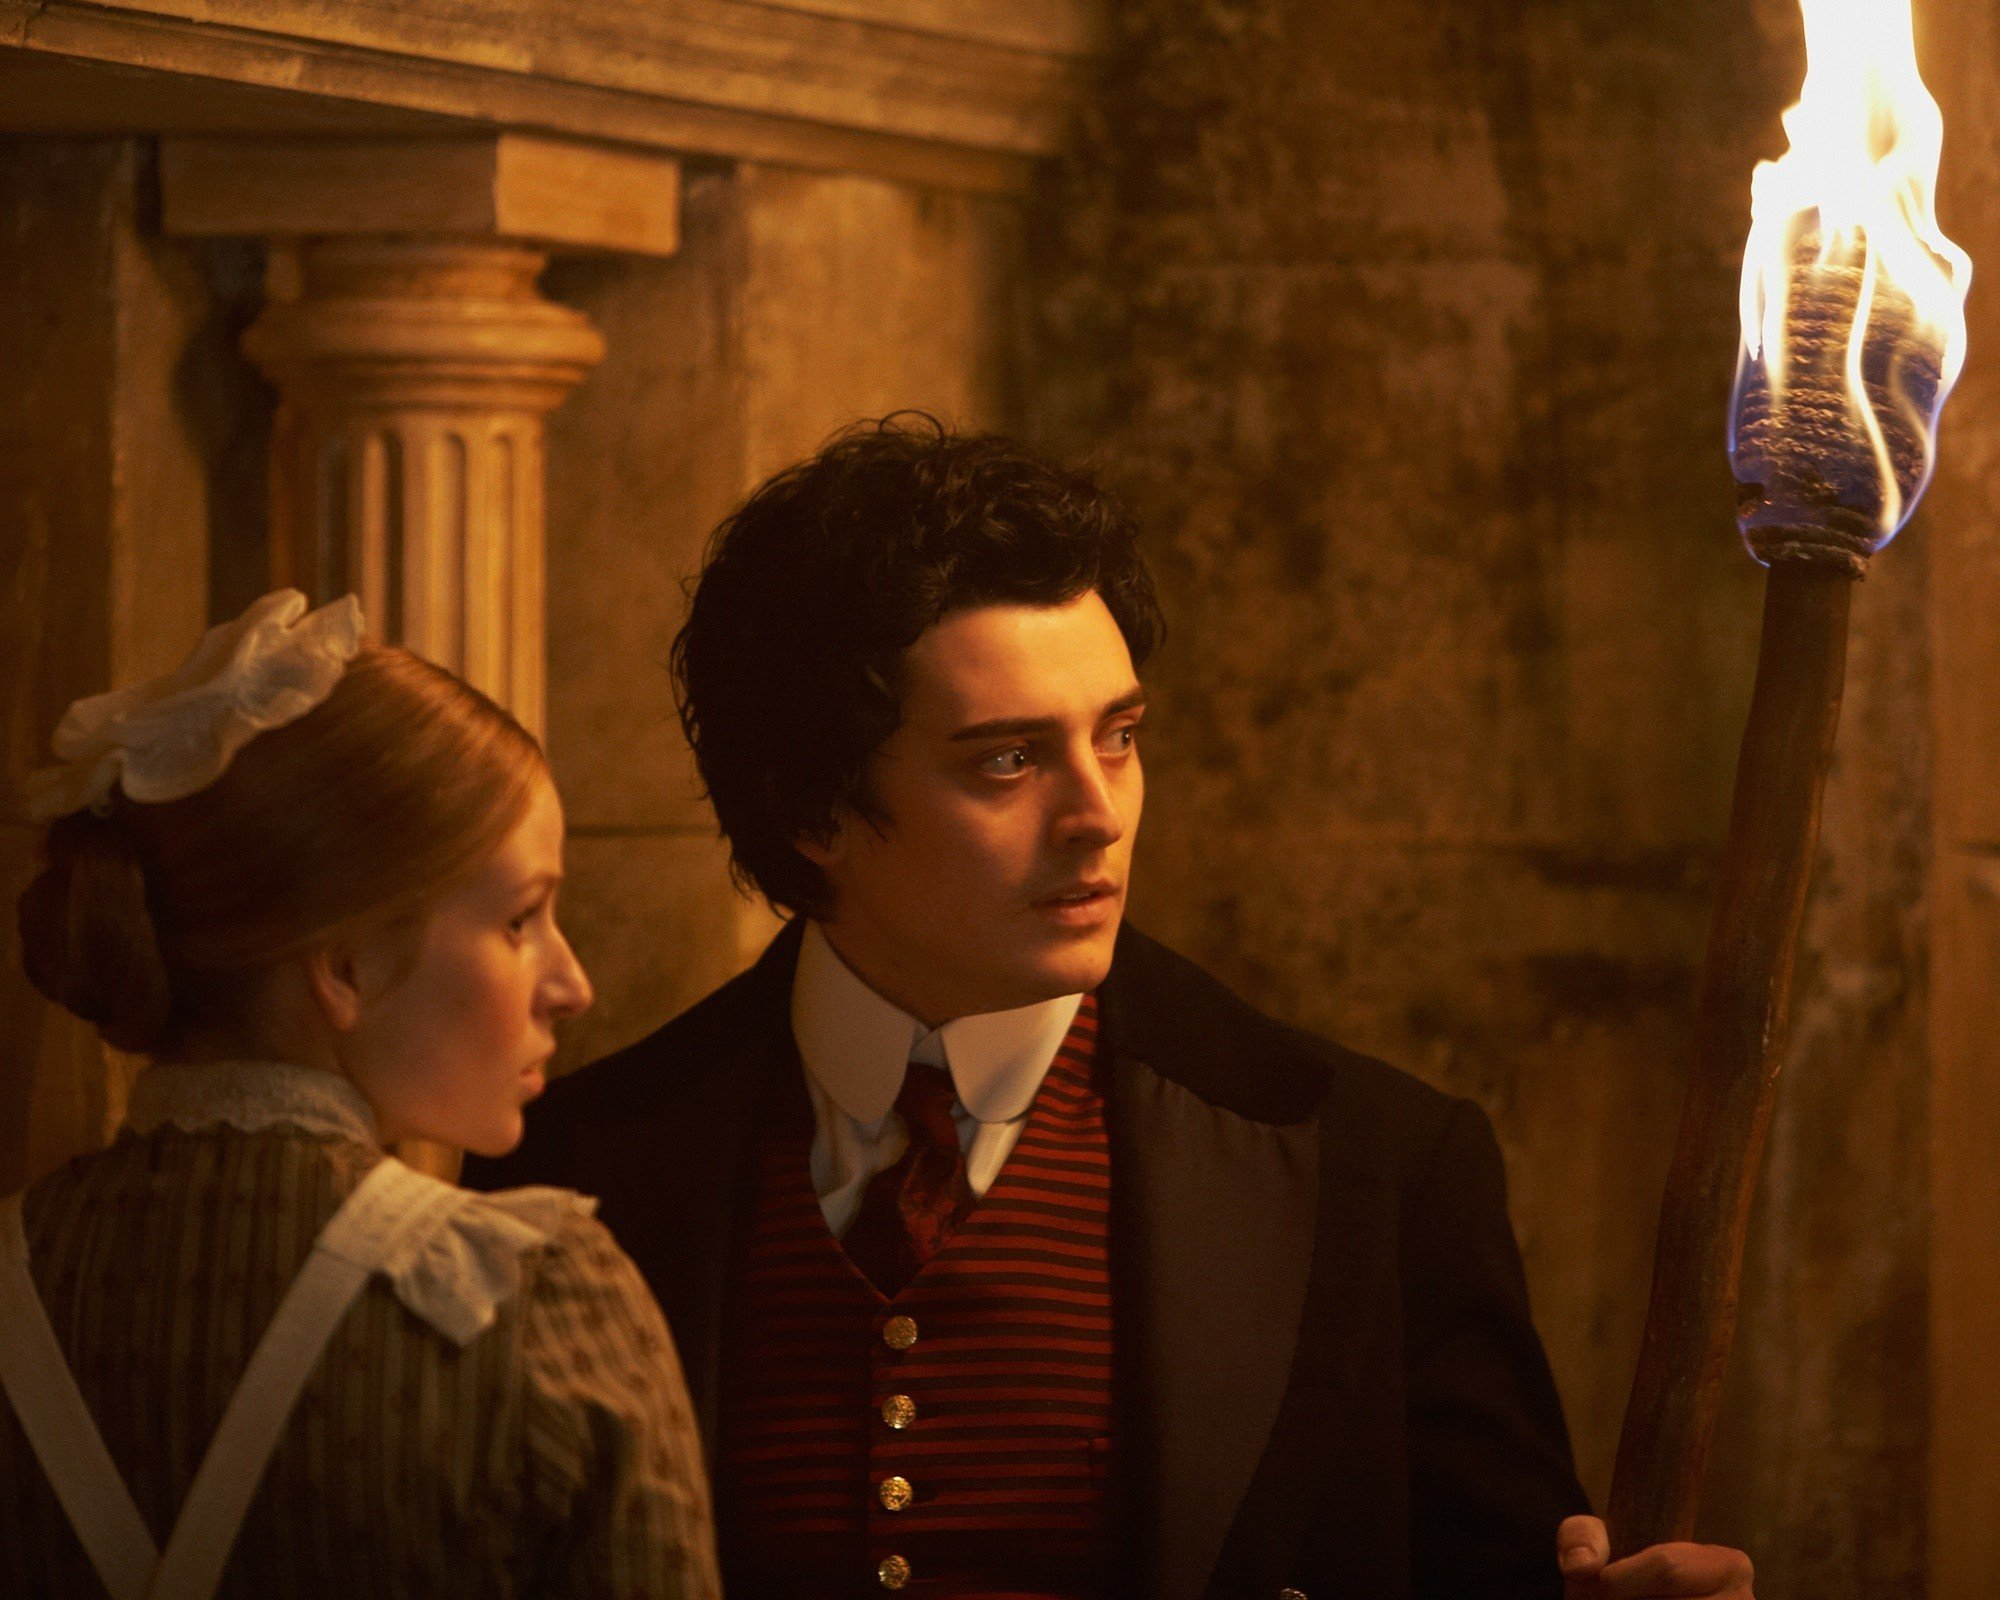 Aneurin Barnard stars as Mariah Mundi in Image Entertainment's The Adventurer: The Curse of the Midas Box (2014)